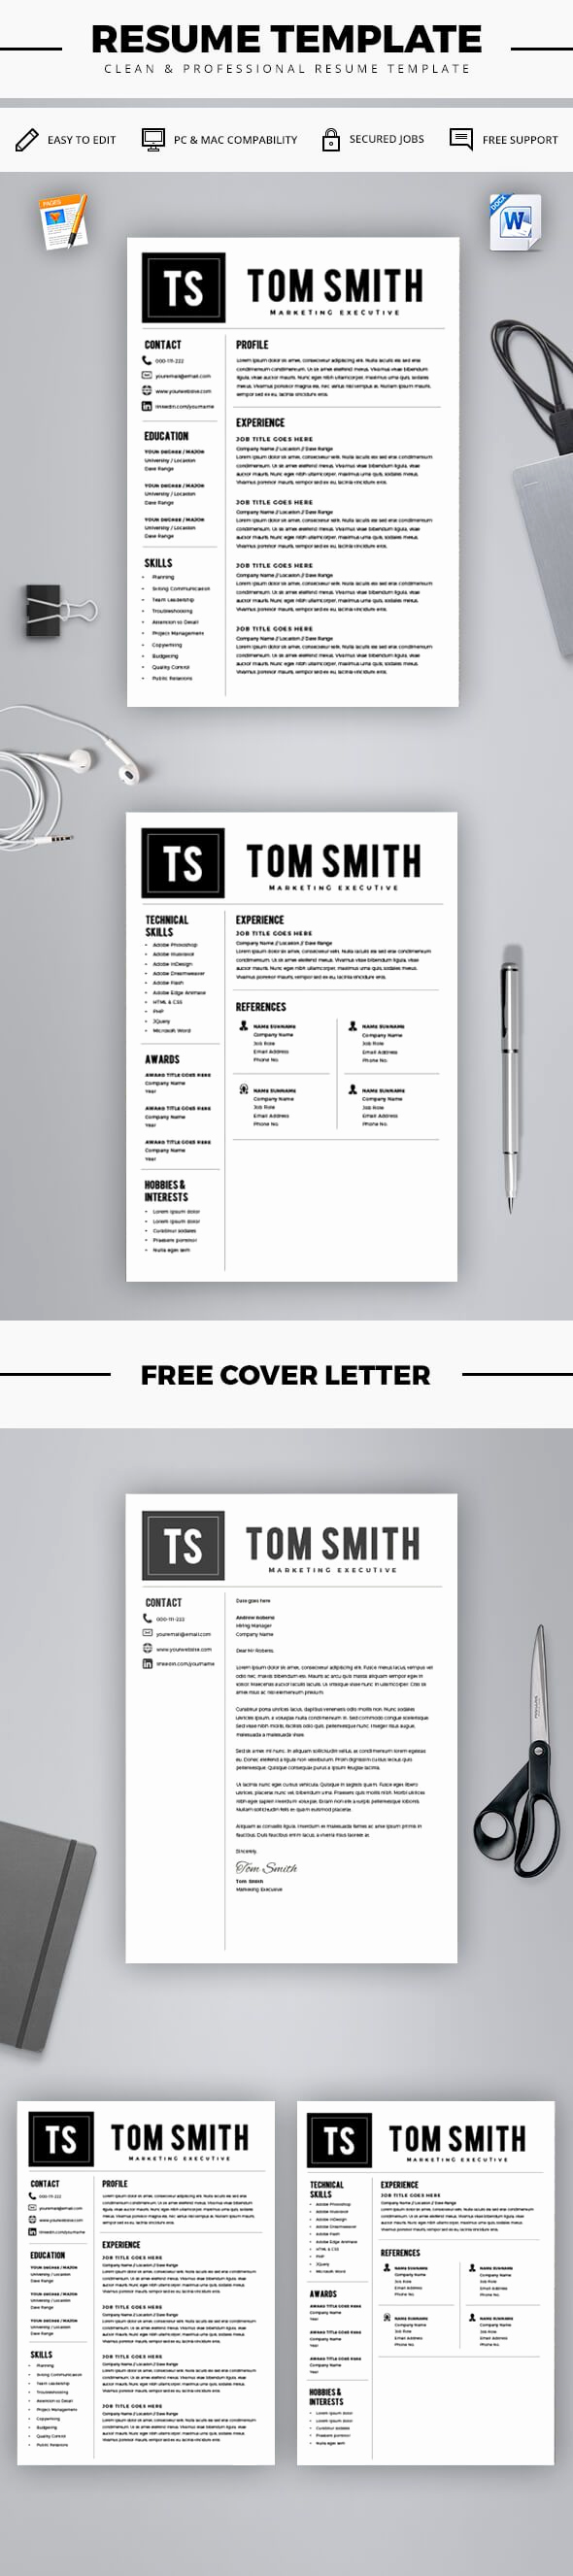 Resume Templates for Mac Unique 25 Best Ideas About Resume Template Free On Pinterest